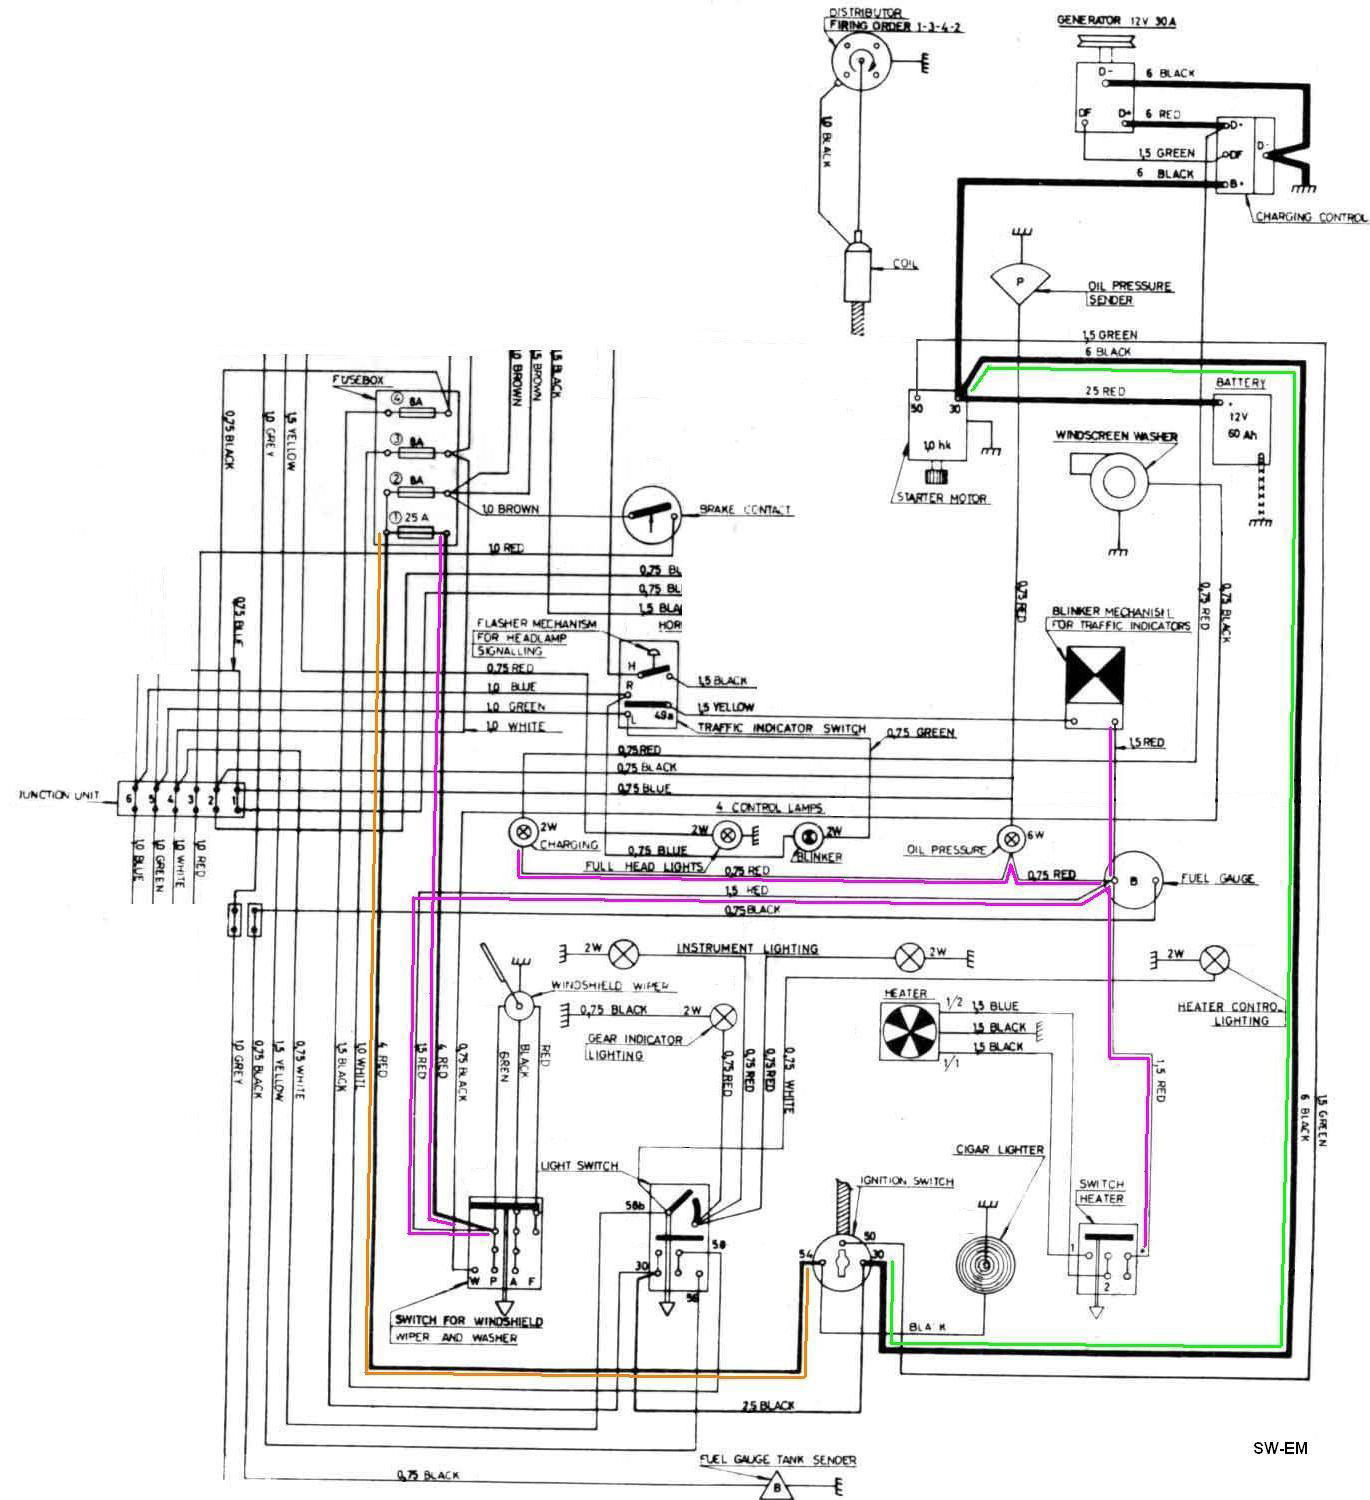 IGN SW wiring diag 122 markup 1800 ignition wiring swedish vs british design volvo penta industrial engine wiring diagram at crackthecode.co